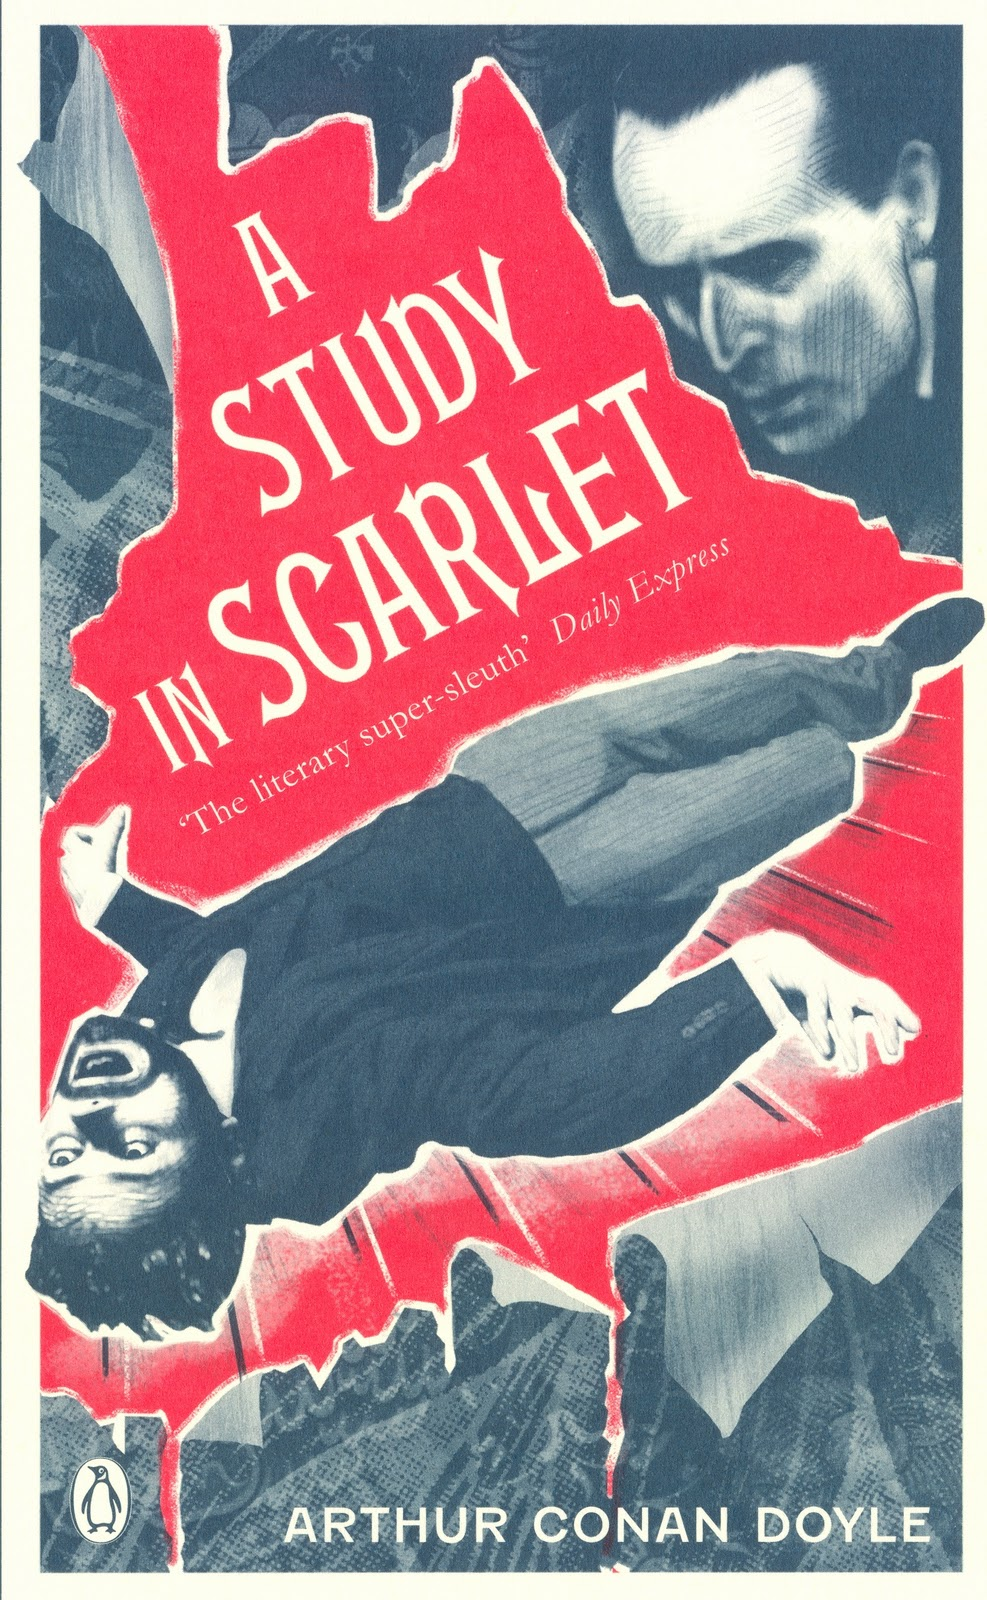 The Scarlet Letter: Summary and Analysis of an ... - Study.com